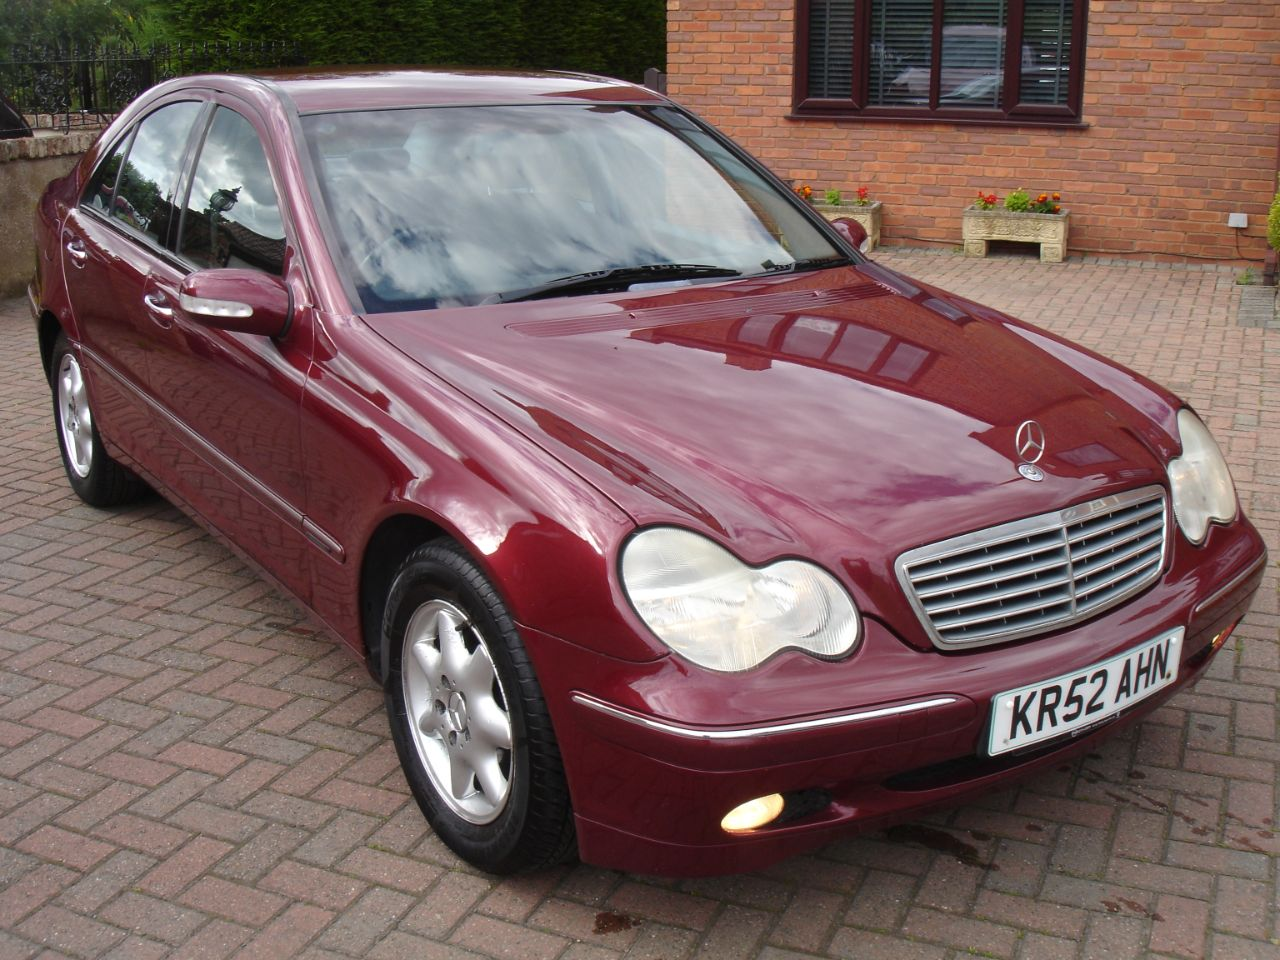 Mercedes-Benz C Class 1.8 C180K Elegance SE 4dr Auto Saloon Petrol Metallic Red at Level Pitch Selby